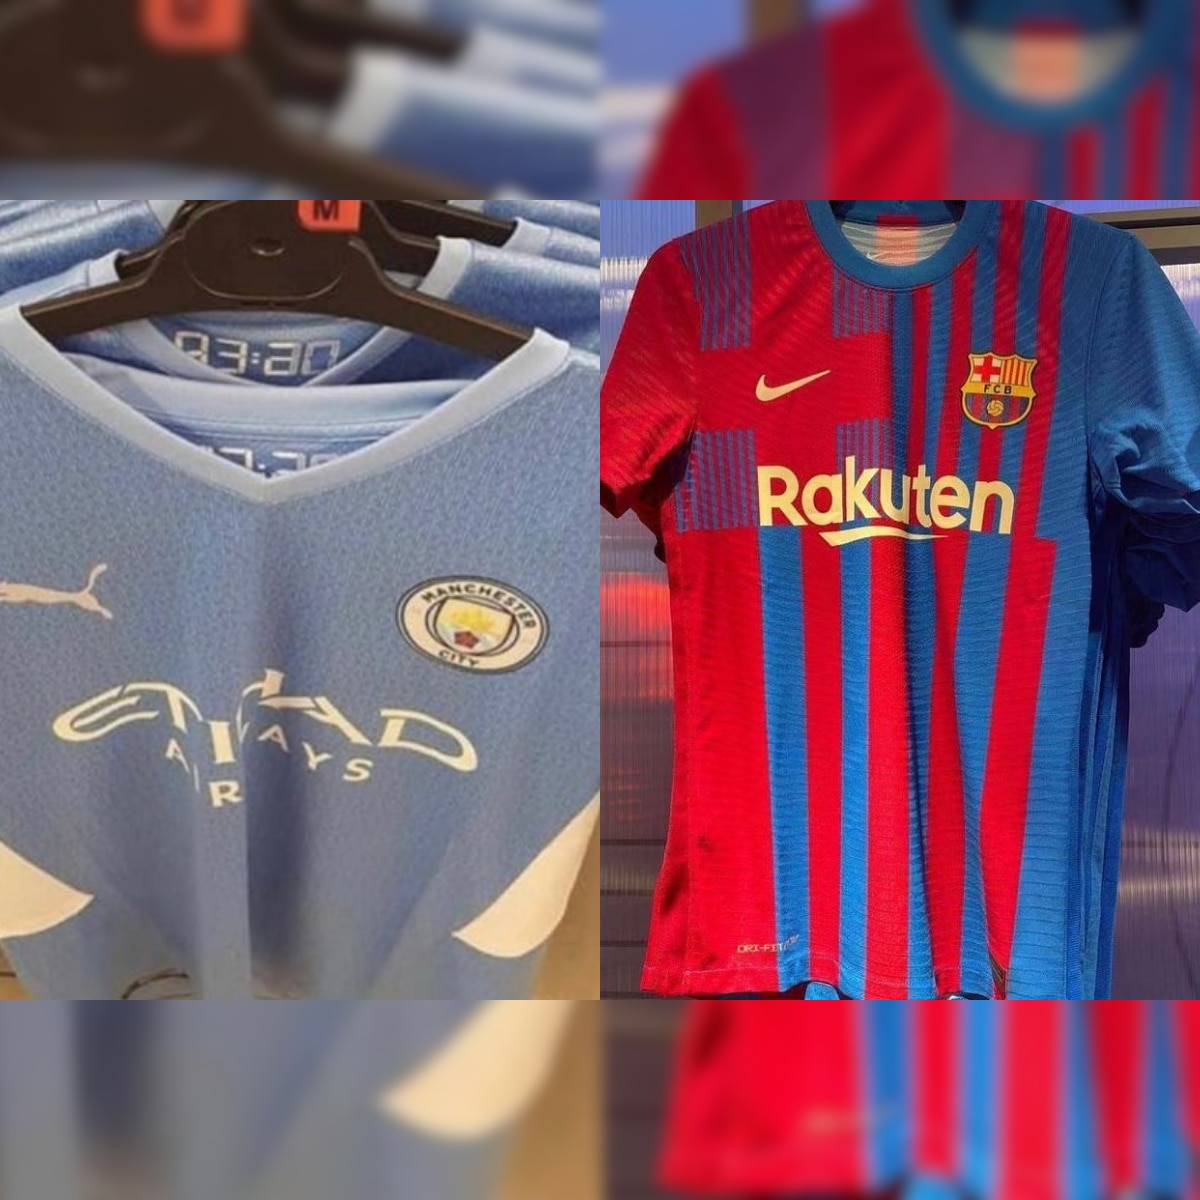 Manchester City Liverpool To Real Madrid And Barcelona A Look At Leaked Kit Designs Leaked So Far Ahead Of New Season